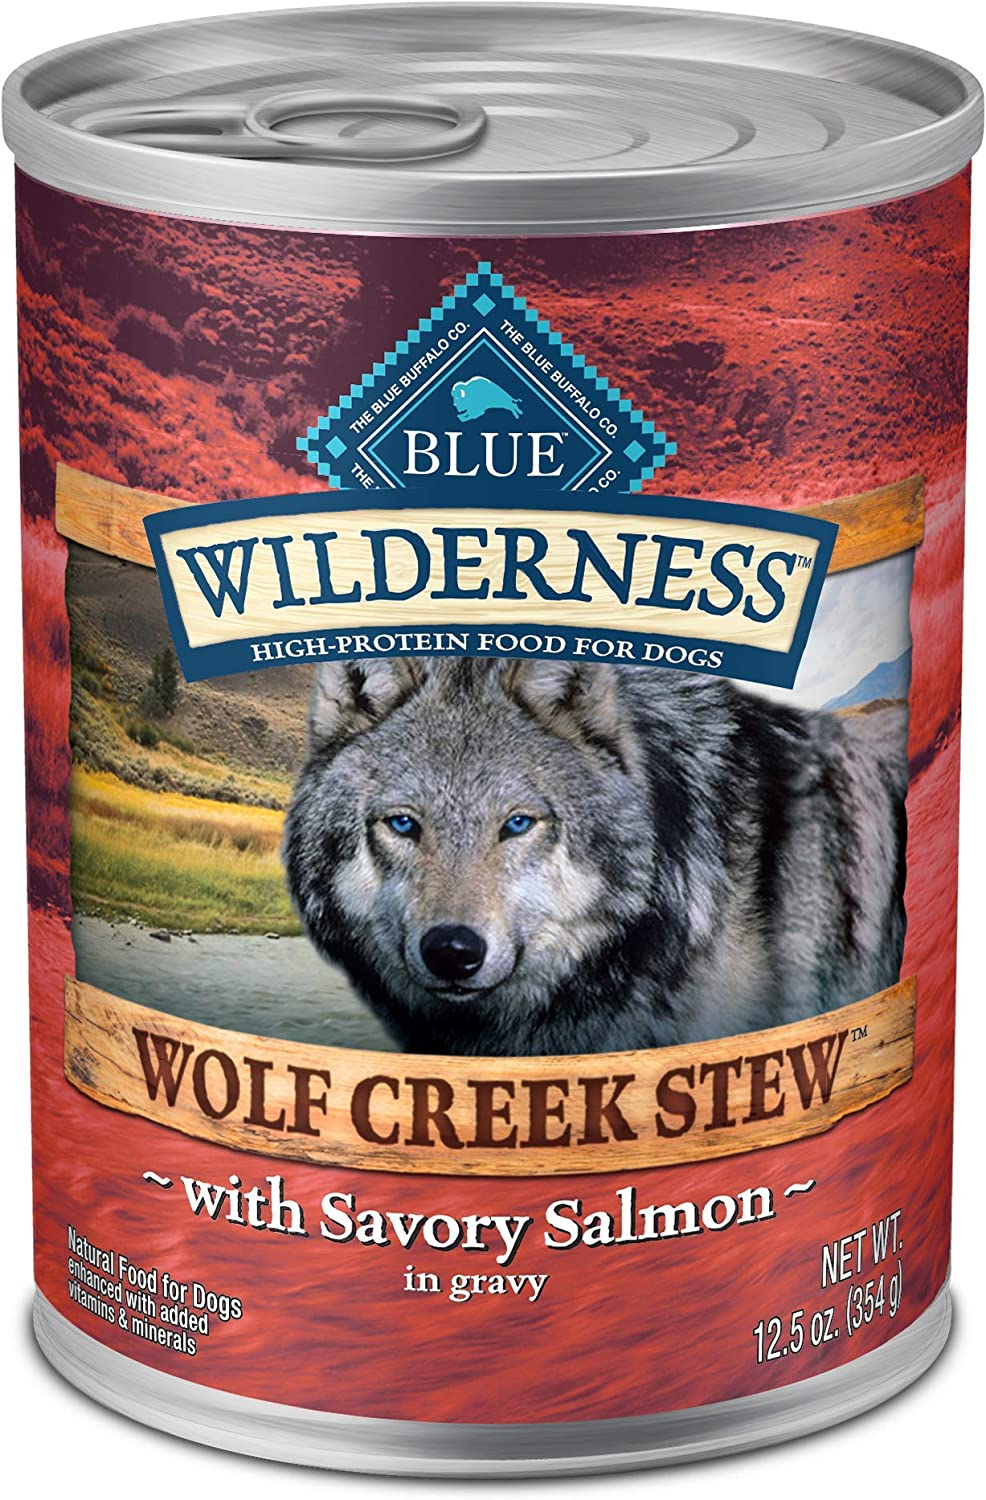 Blue Buffalo Wilderness Wolf Creek Stew High Protein, Natural Wet Dog Food, Savory Salmon Stew in gravy 12.5-oz cans (Pack of 12)